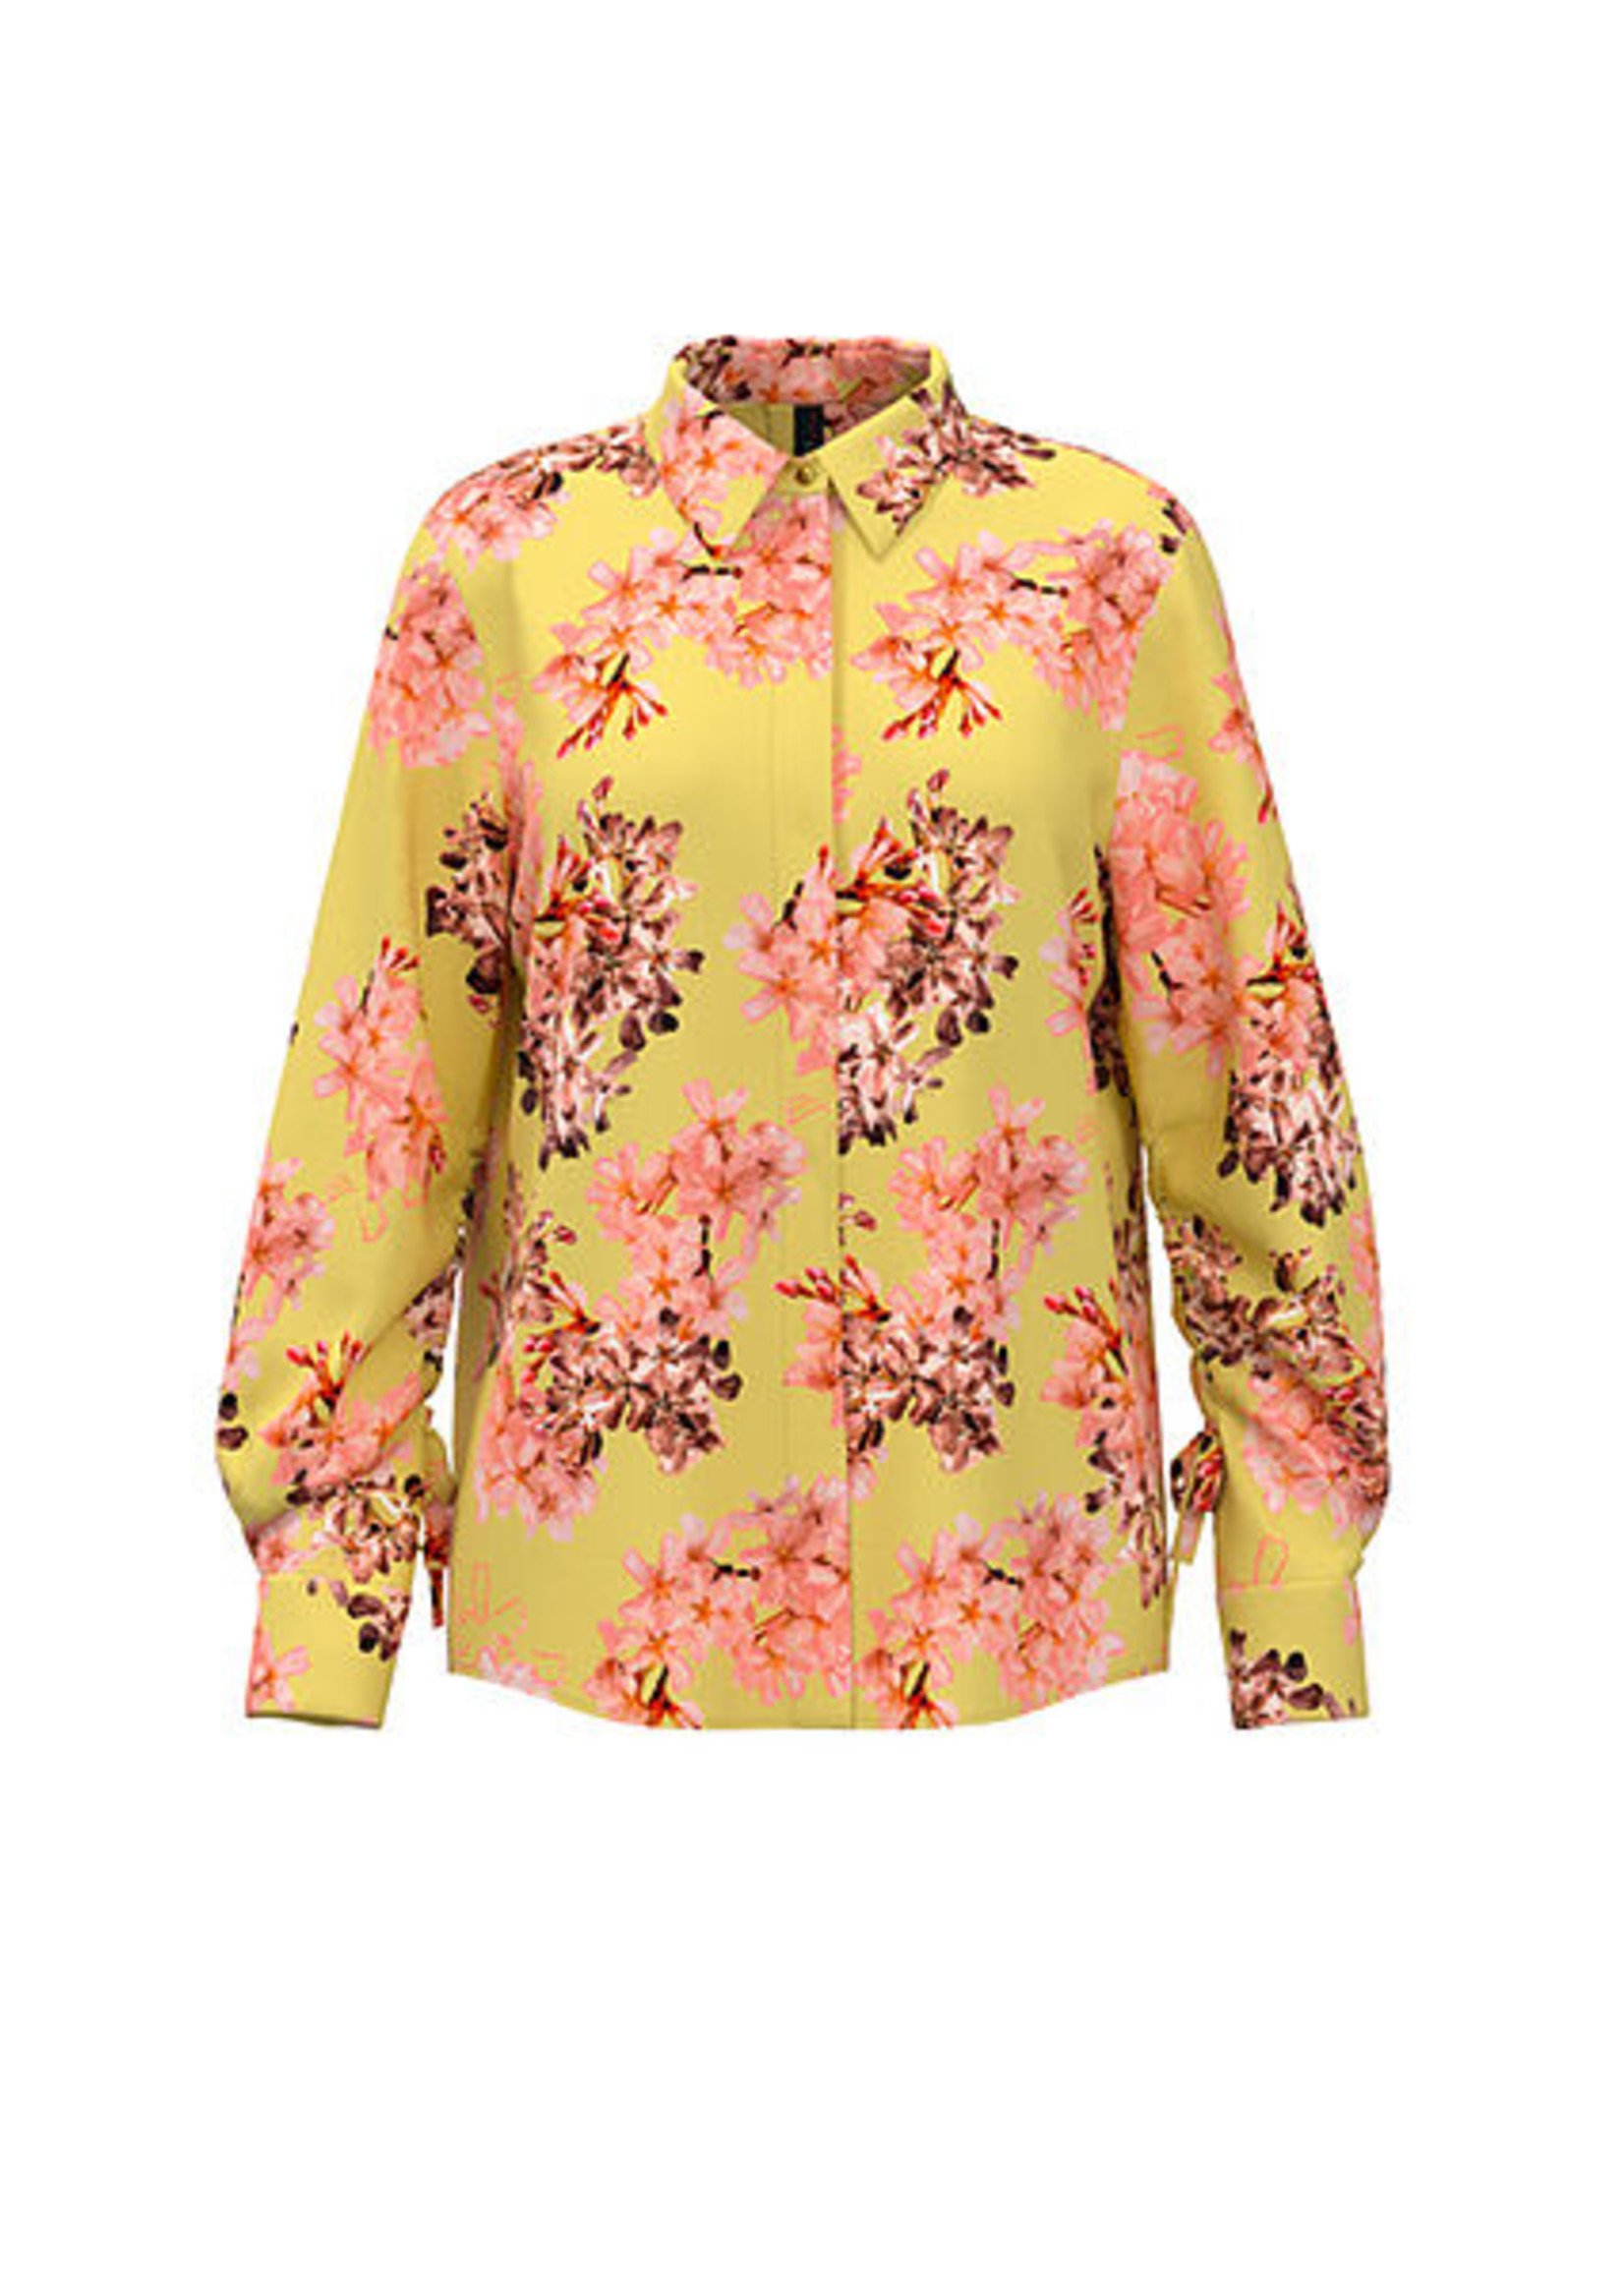 Blouse RC 51.03 W70 butter